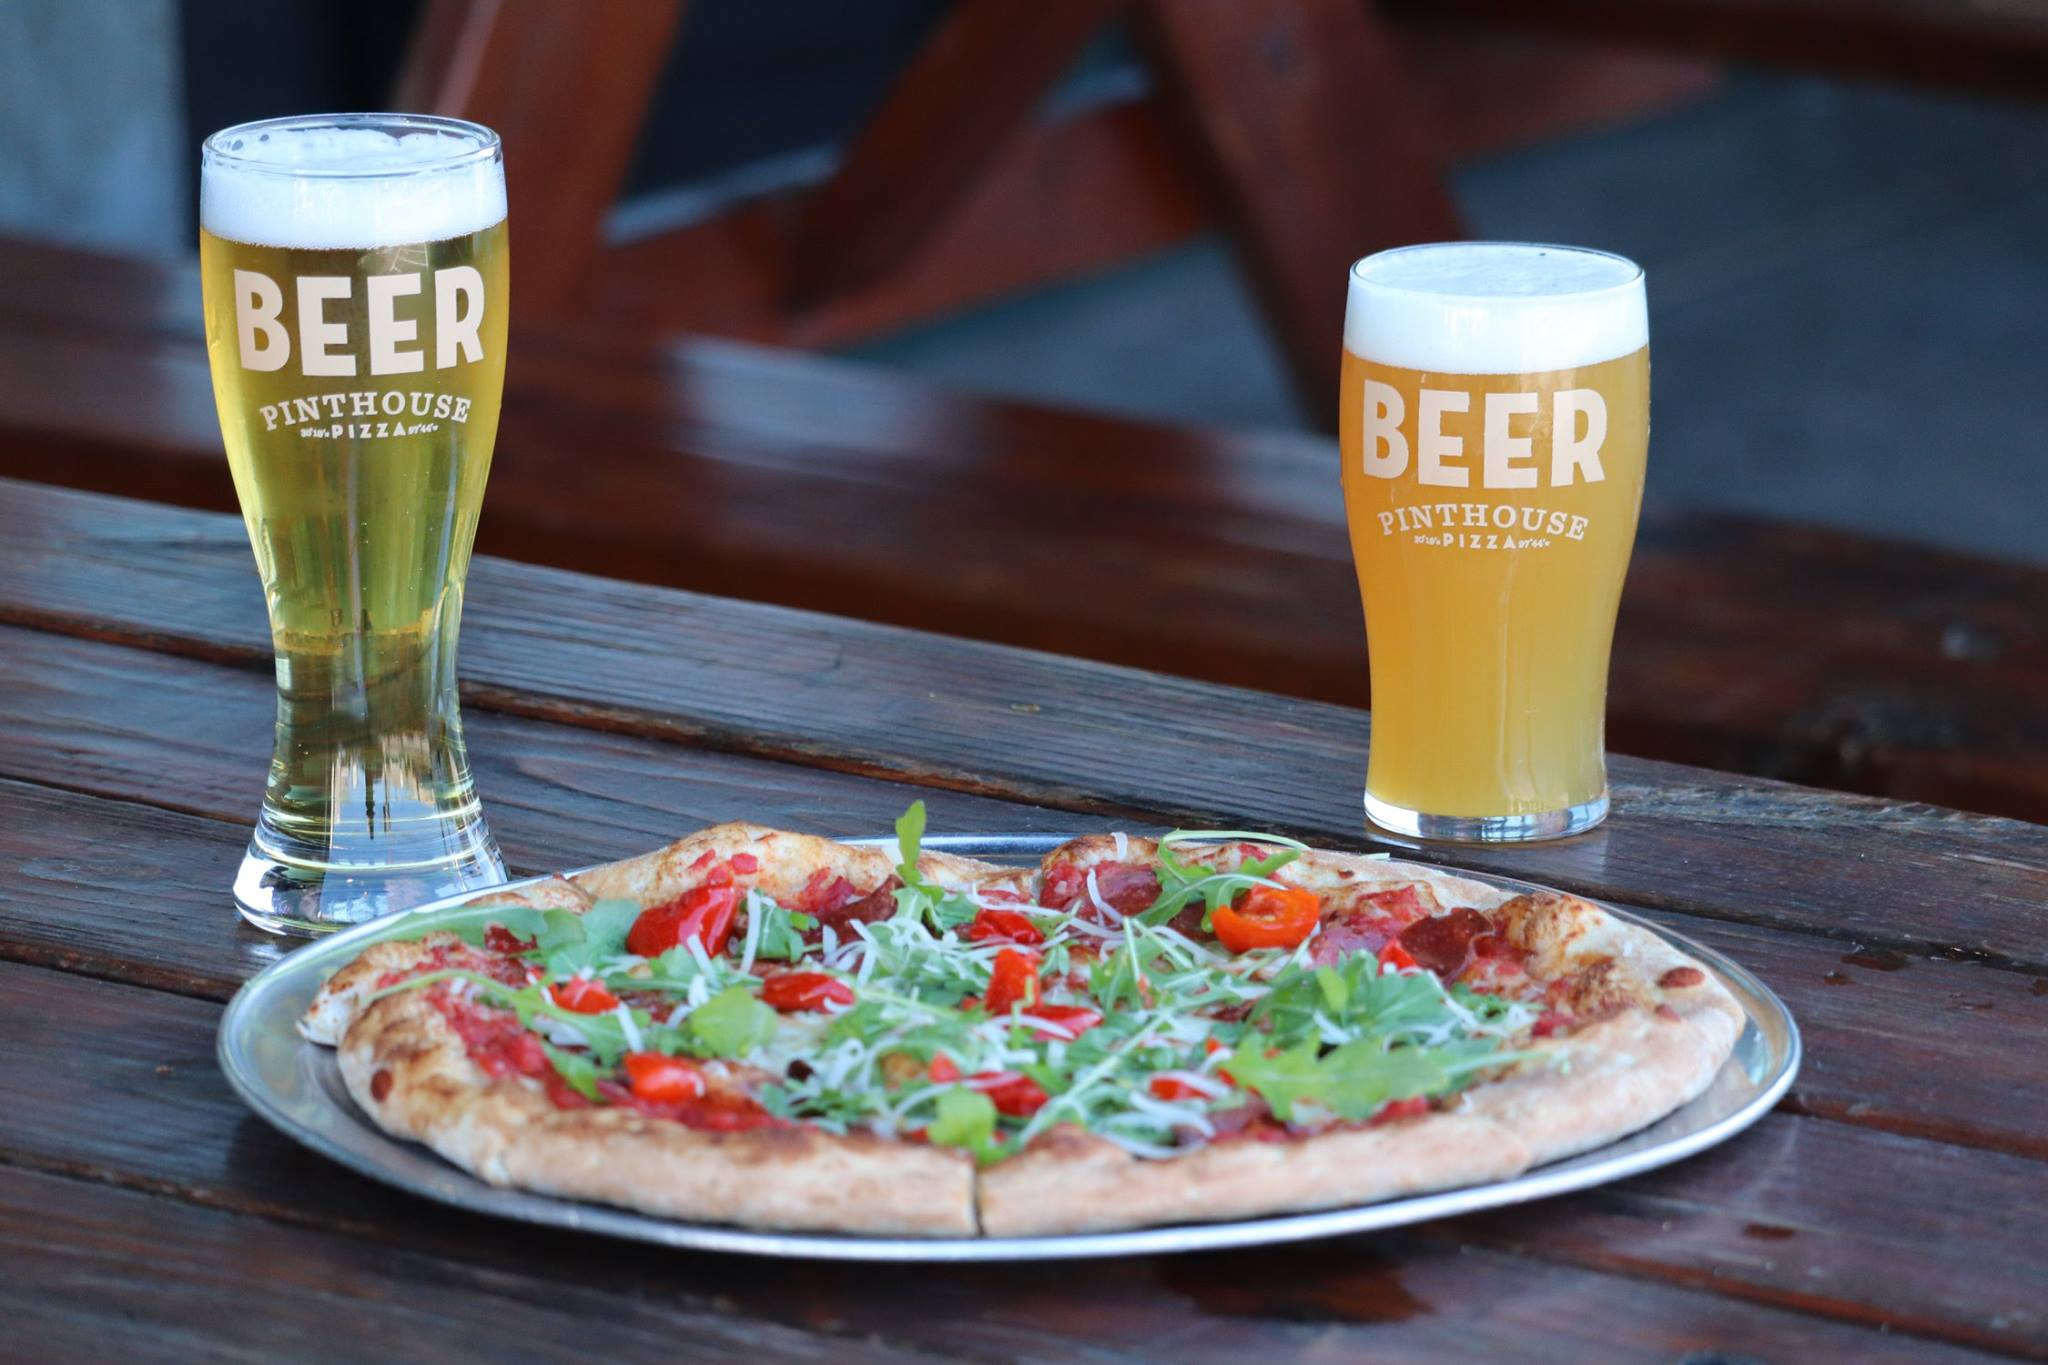 Beer and pizza from Pinthouse Pizza